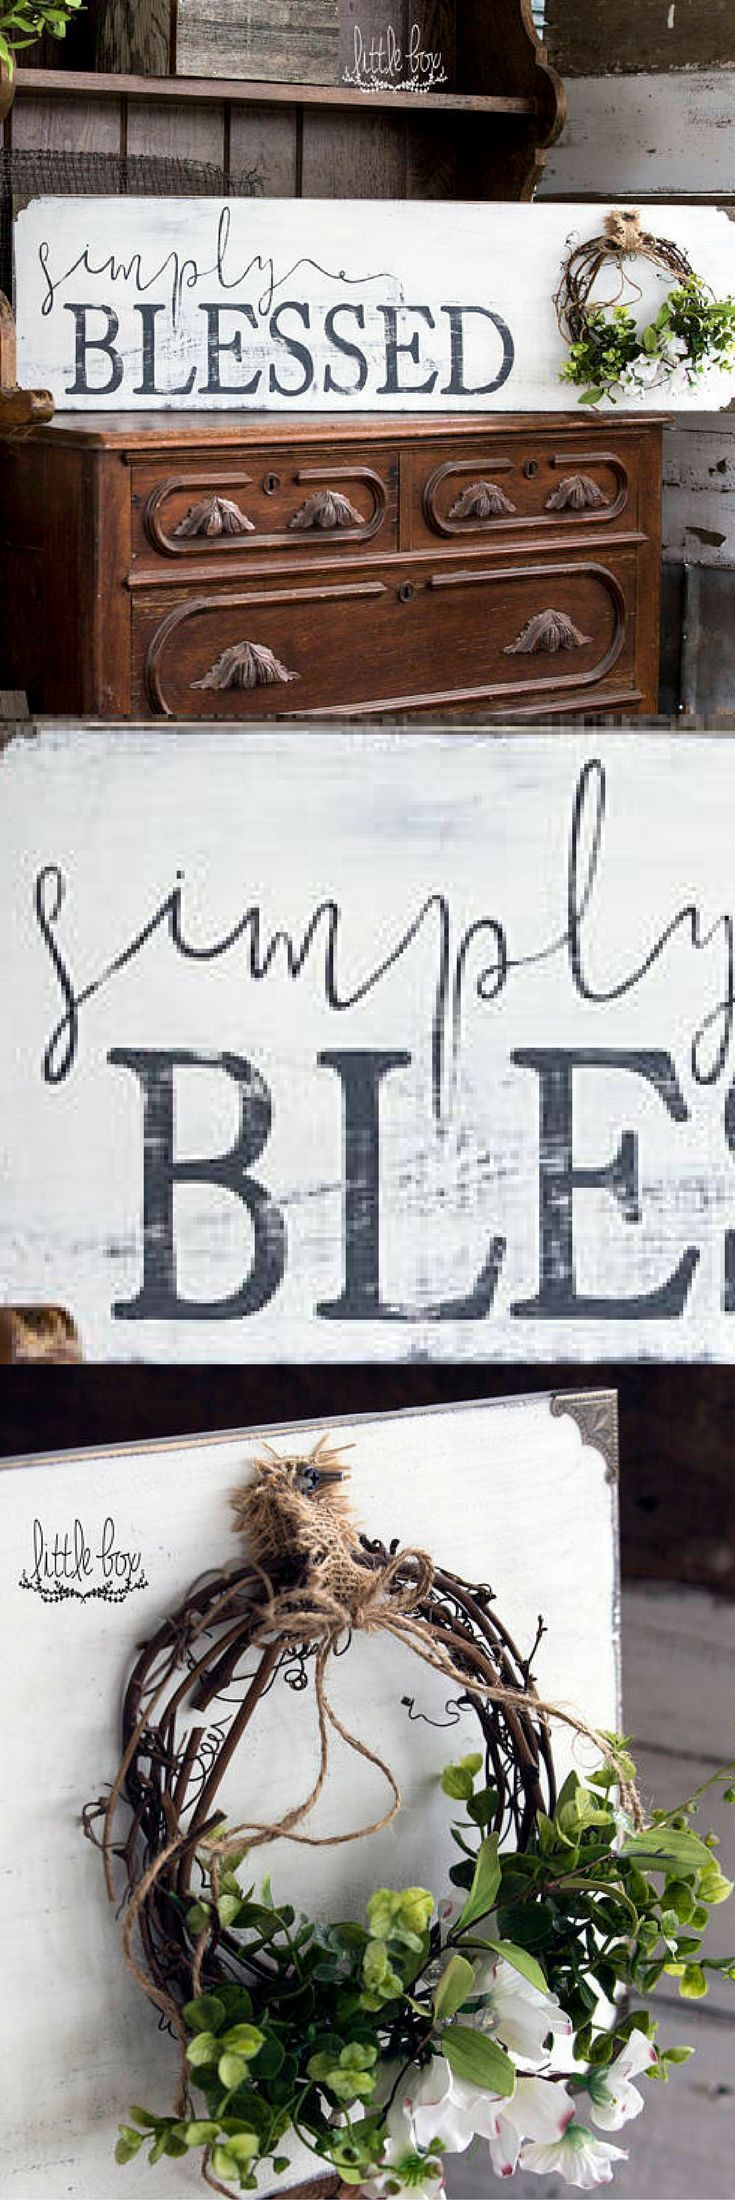 Farmhouse Decor, Simply Blessed Sign, Farmhouse Sign, Farmhouse Wood Sign, Rustic Wood Signs, Shiplap Sign #ad #affiliatelink